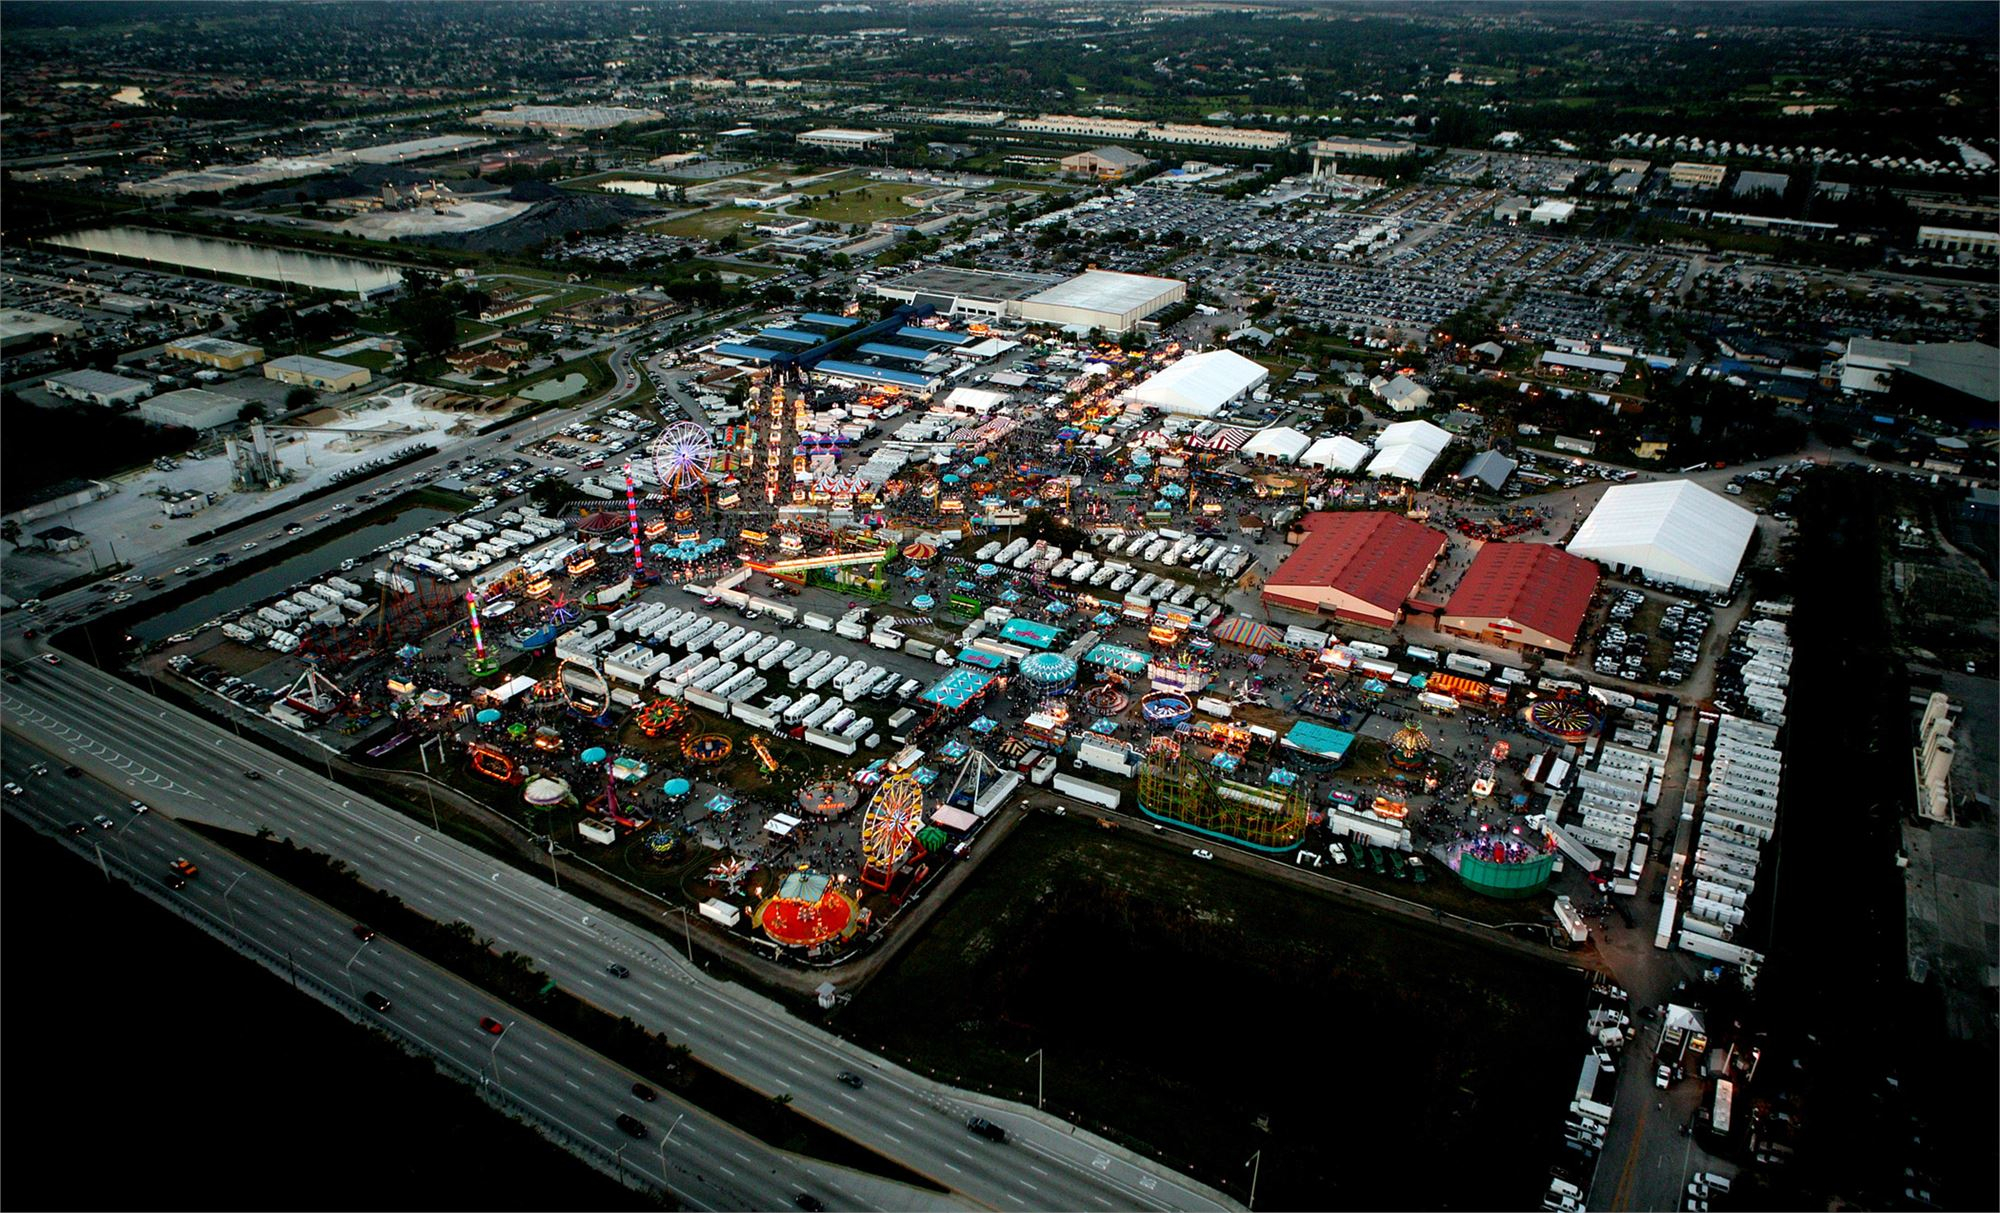 South Florida Fair | West Palm Beach, Fl | 561.793.0333 Regarding Florida State Fairgrounds Events 2021